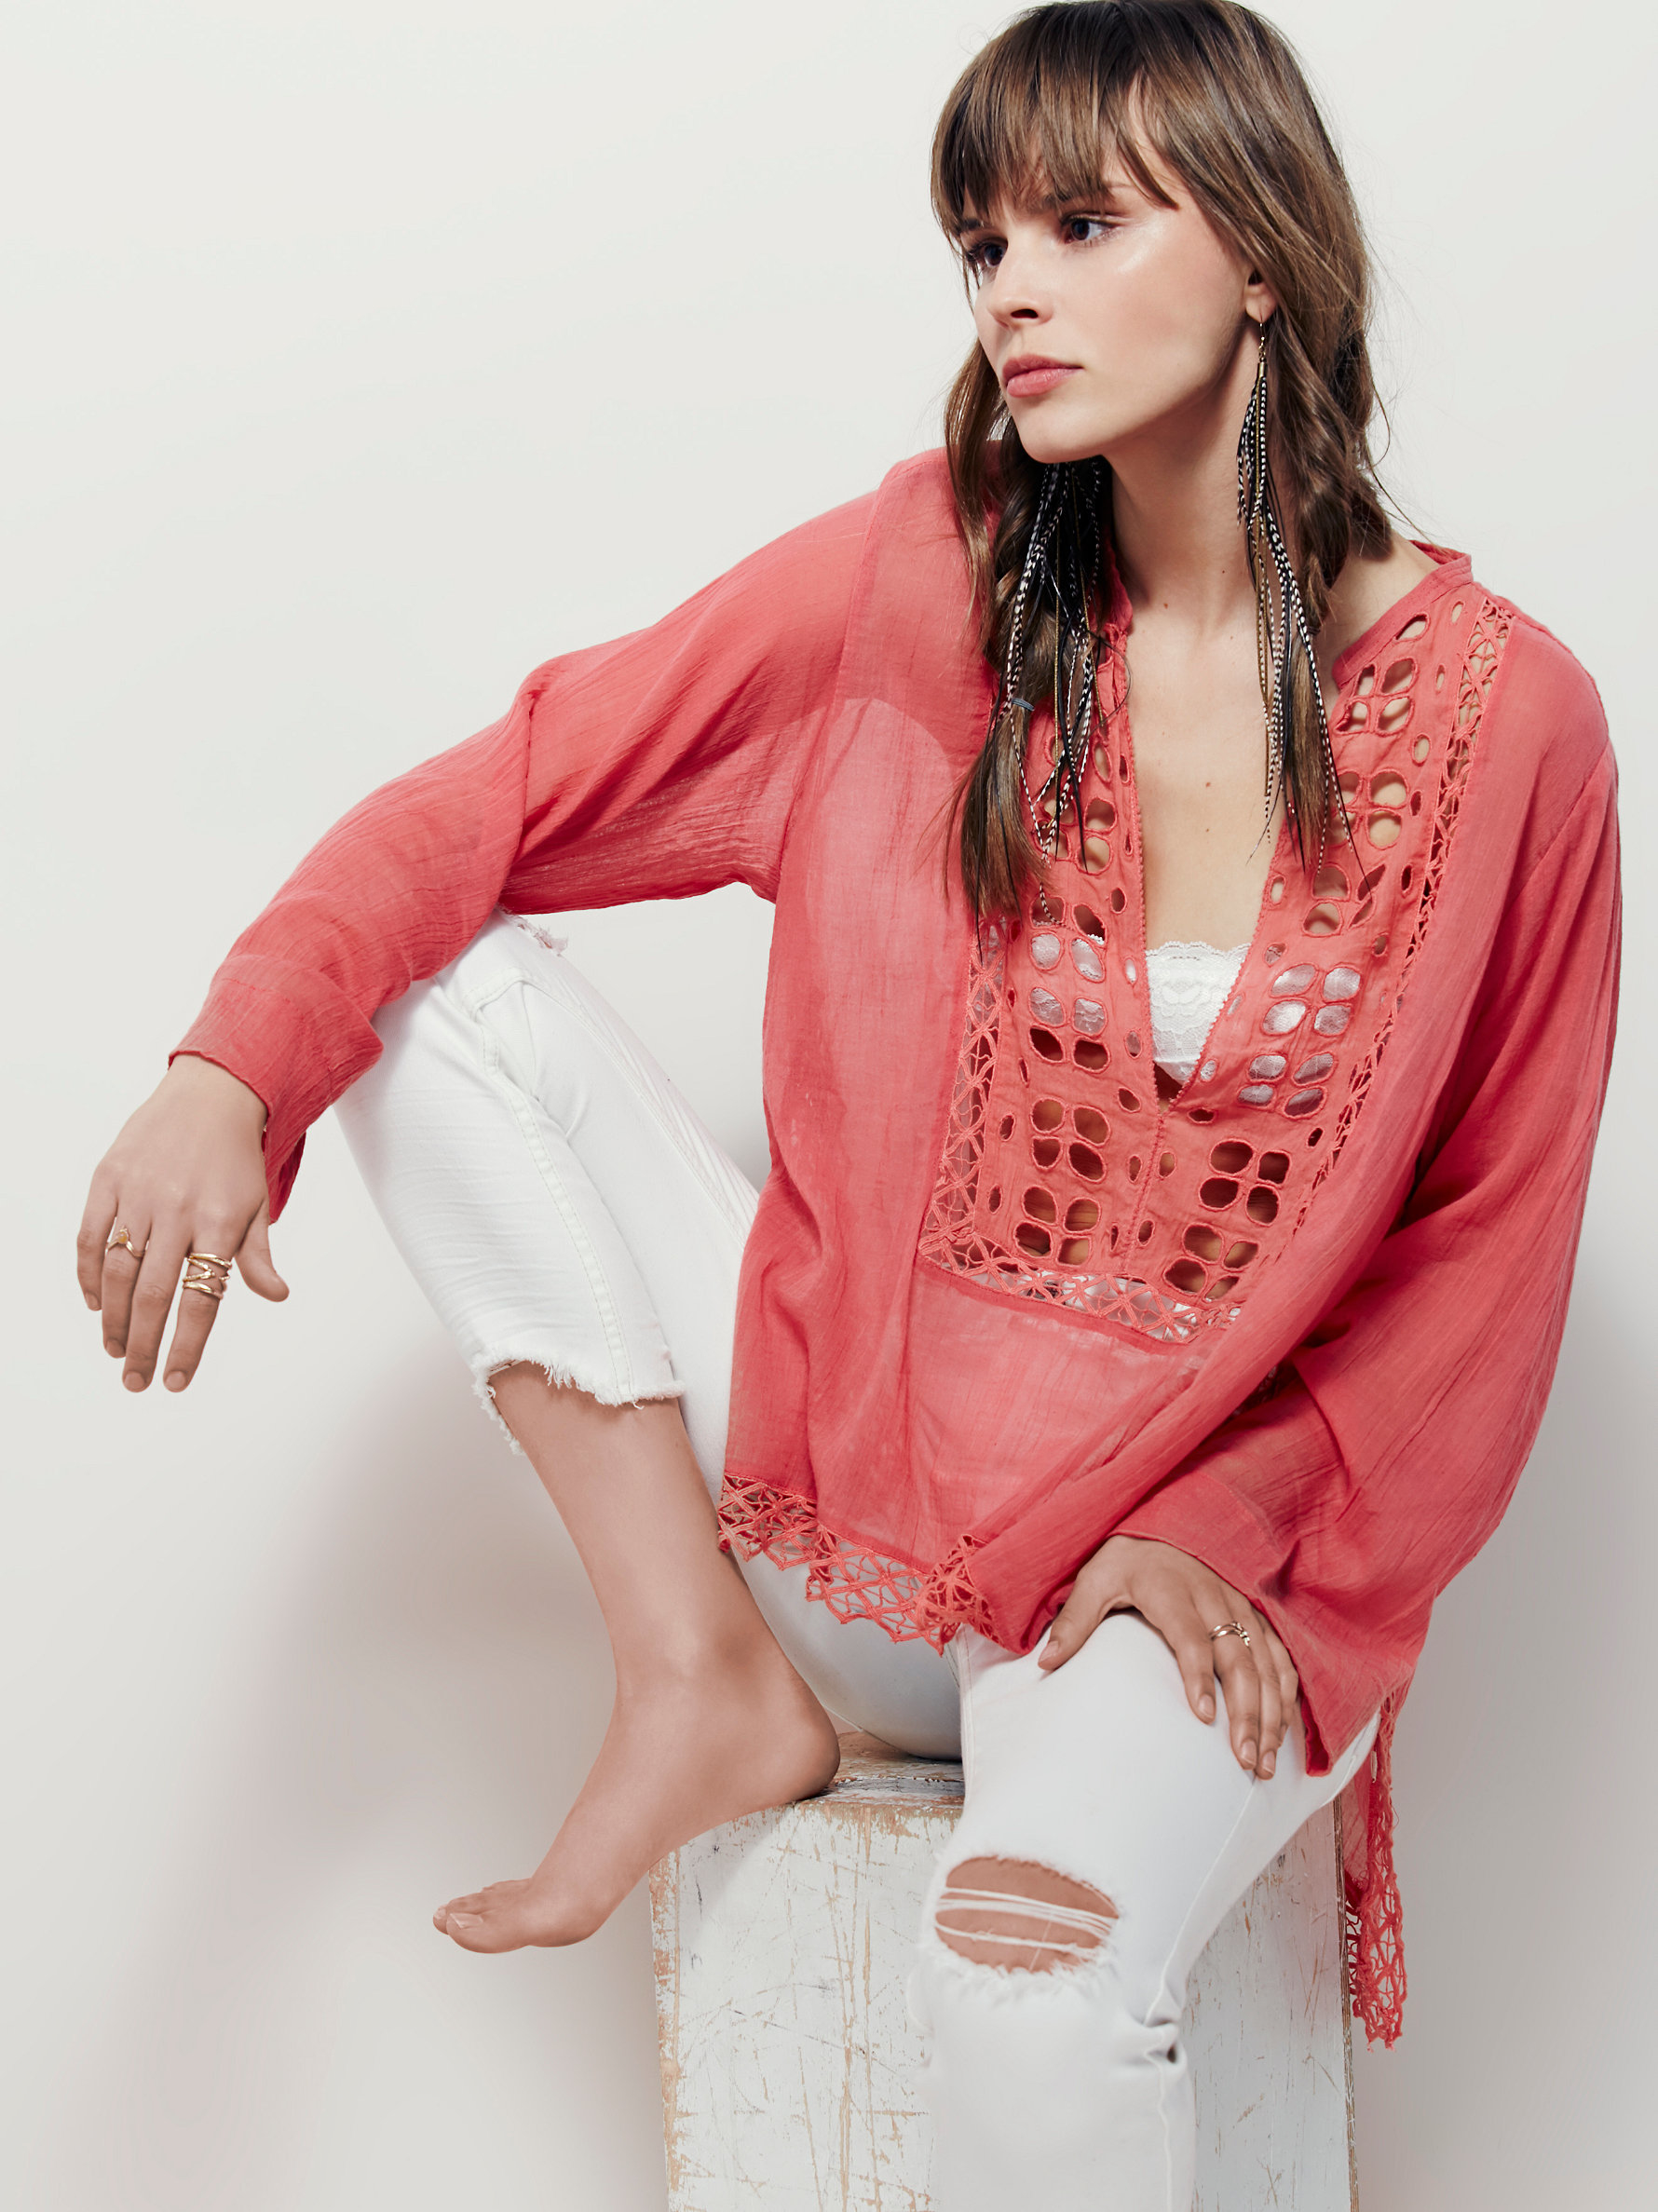 In Paloma Fp Pink Lyst Free One People Blouse hQCxsdtr